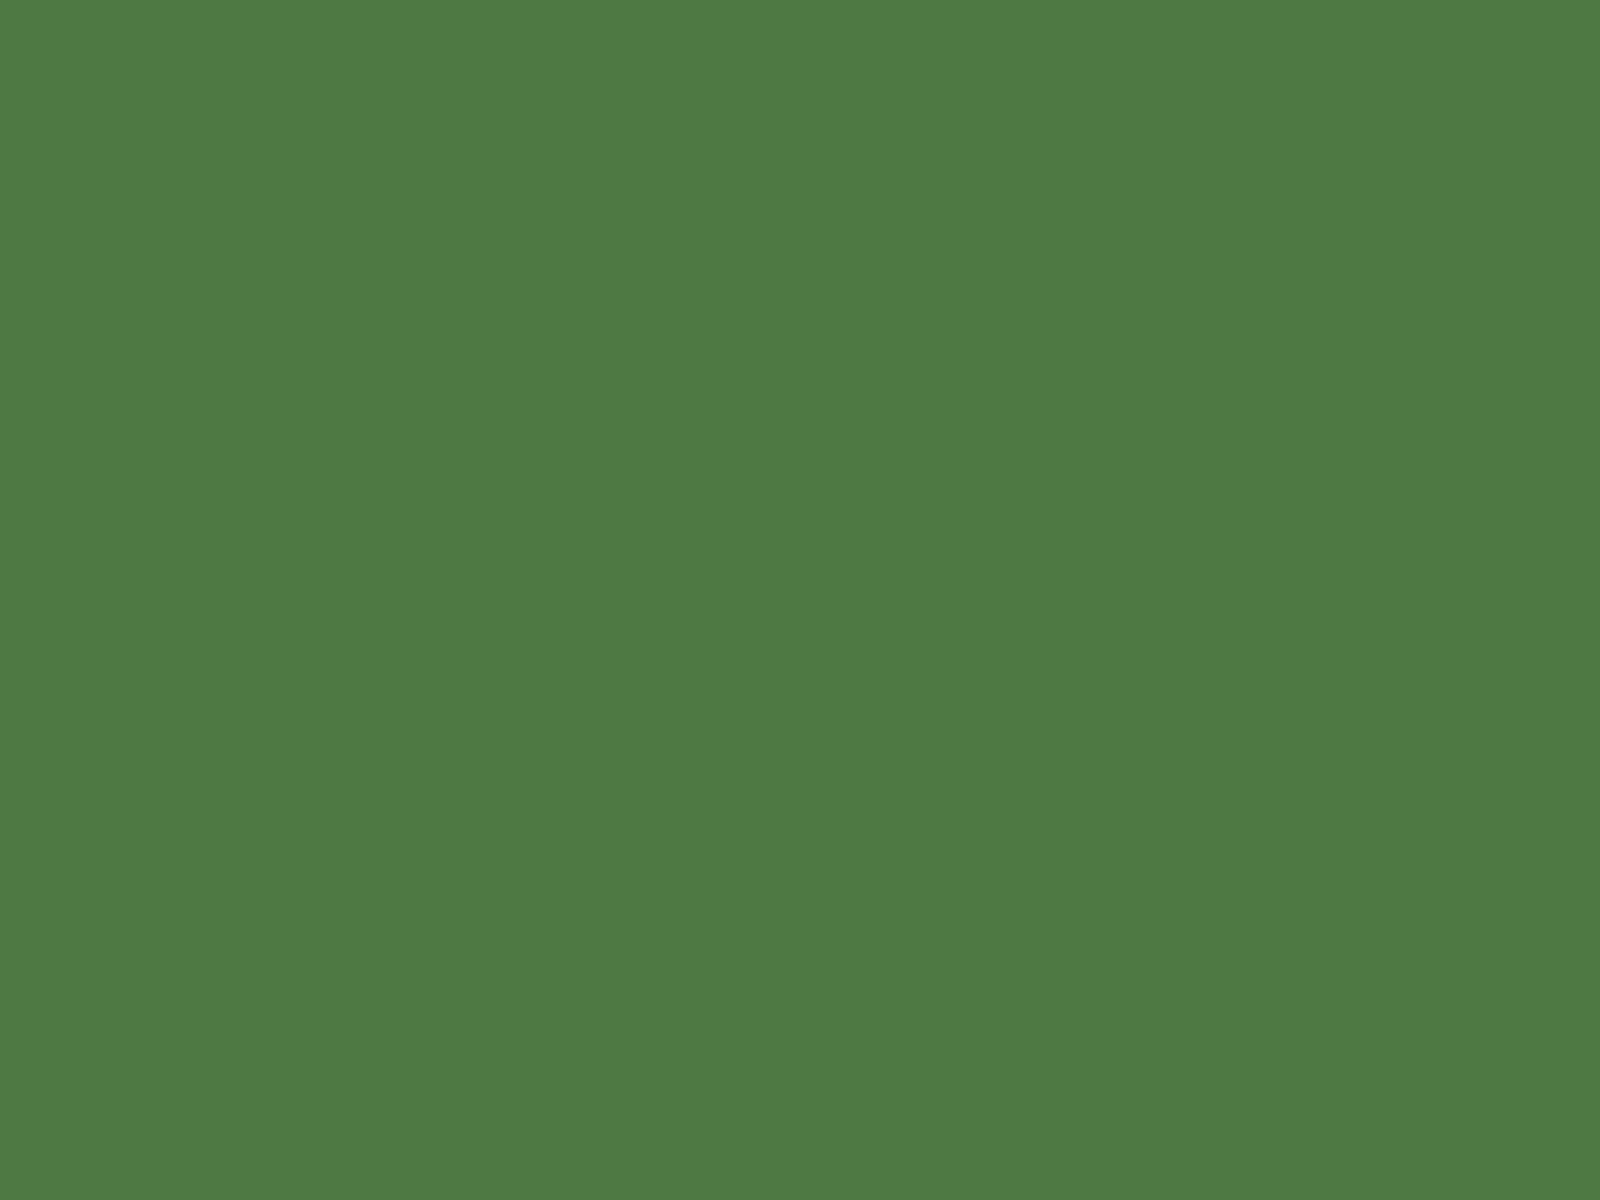 1600x1200 Fern Green Solid Color Background